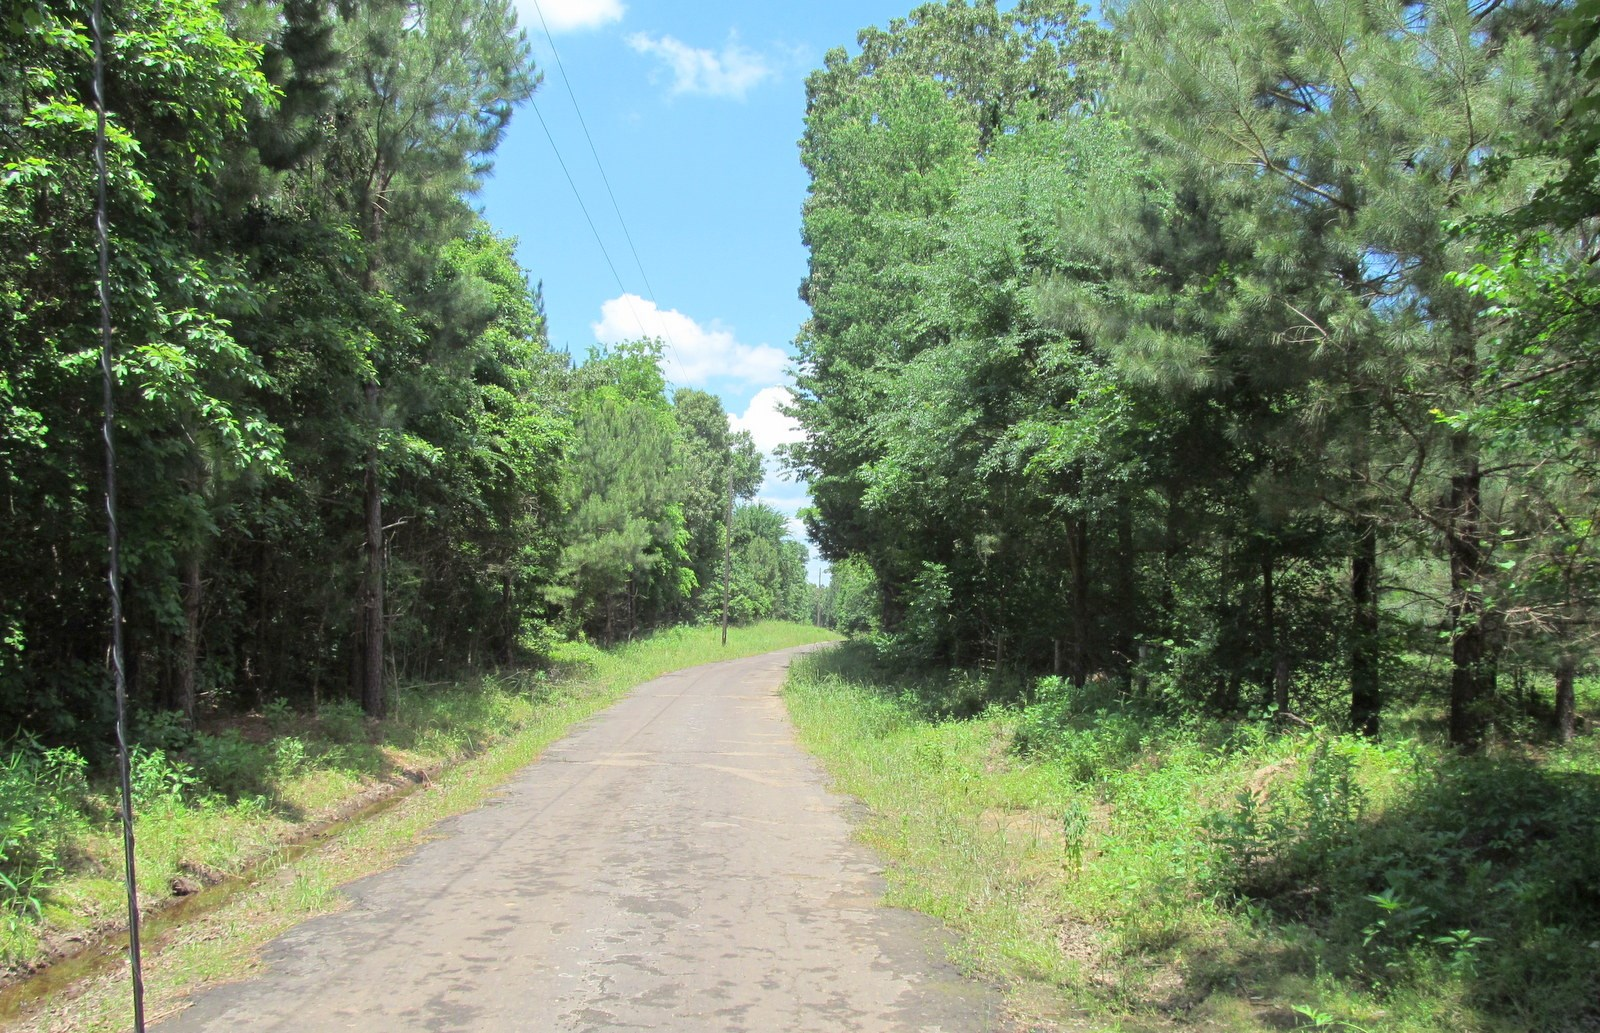 EAST TEXAS 175 ACRES - CAMP COUNTY - PITTSBURG - HUNT/BUILD